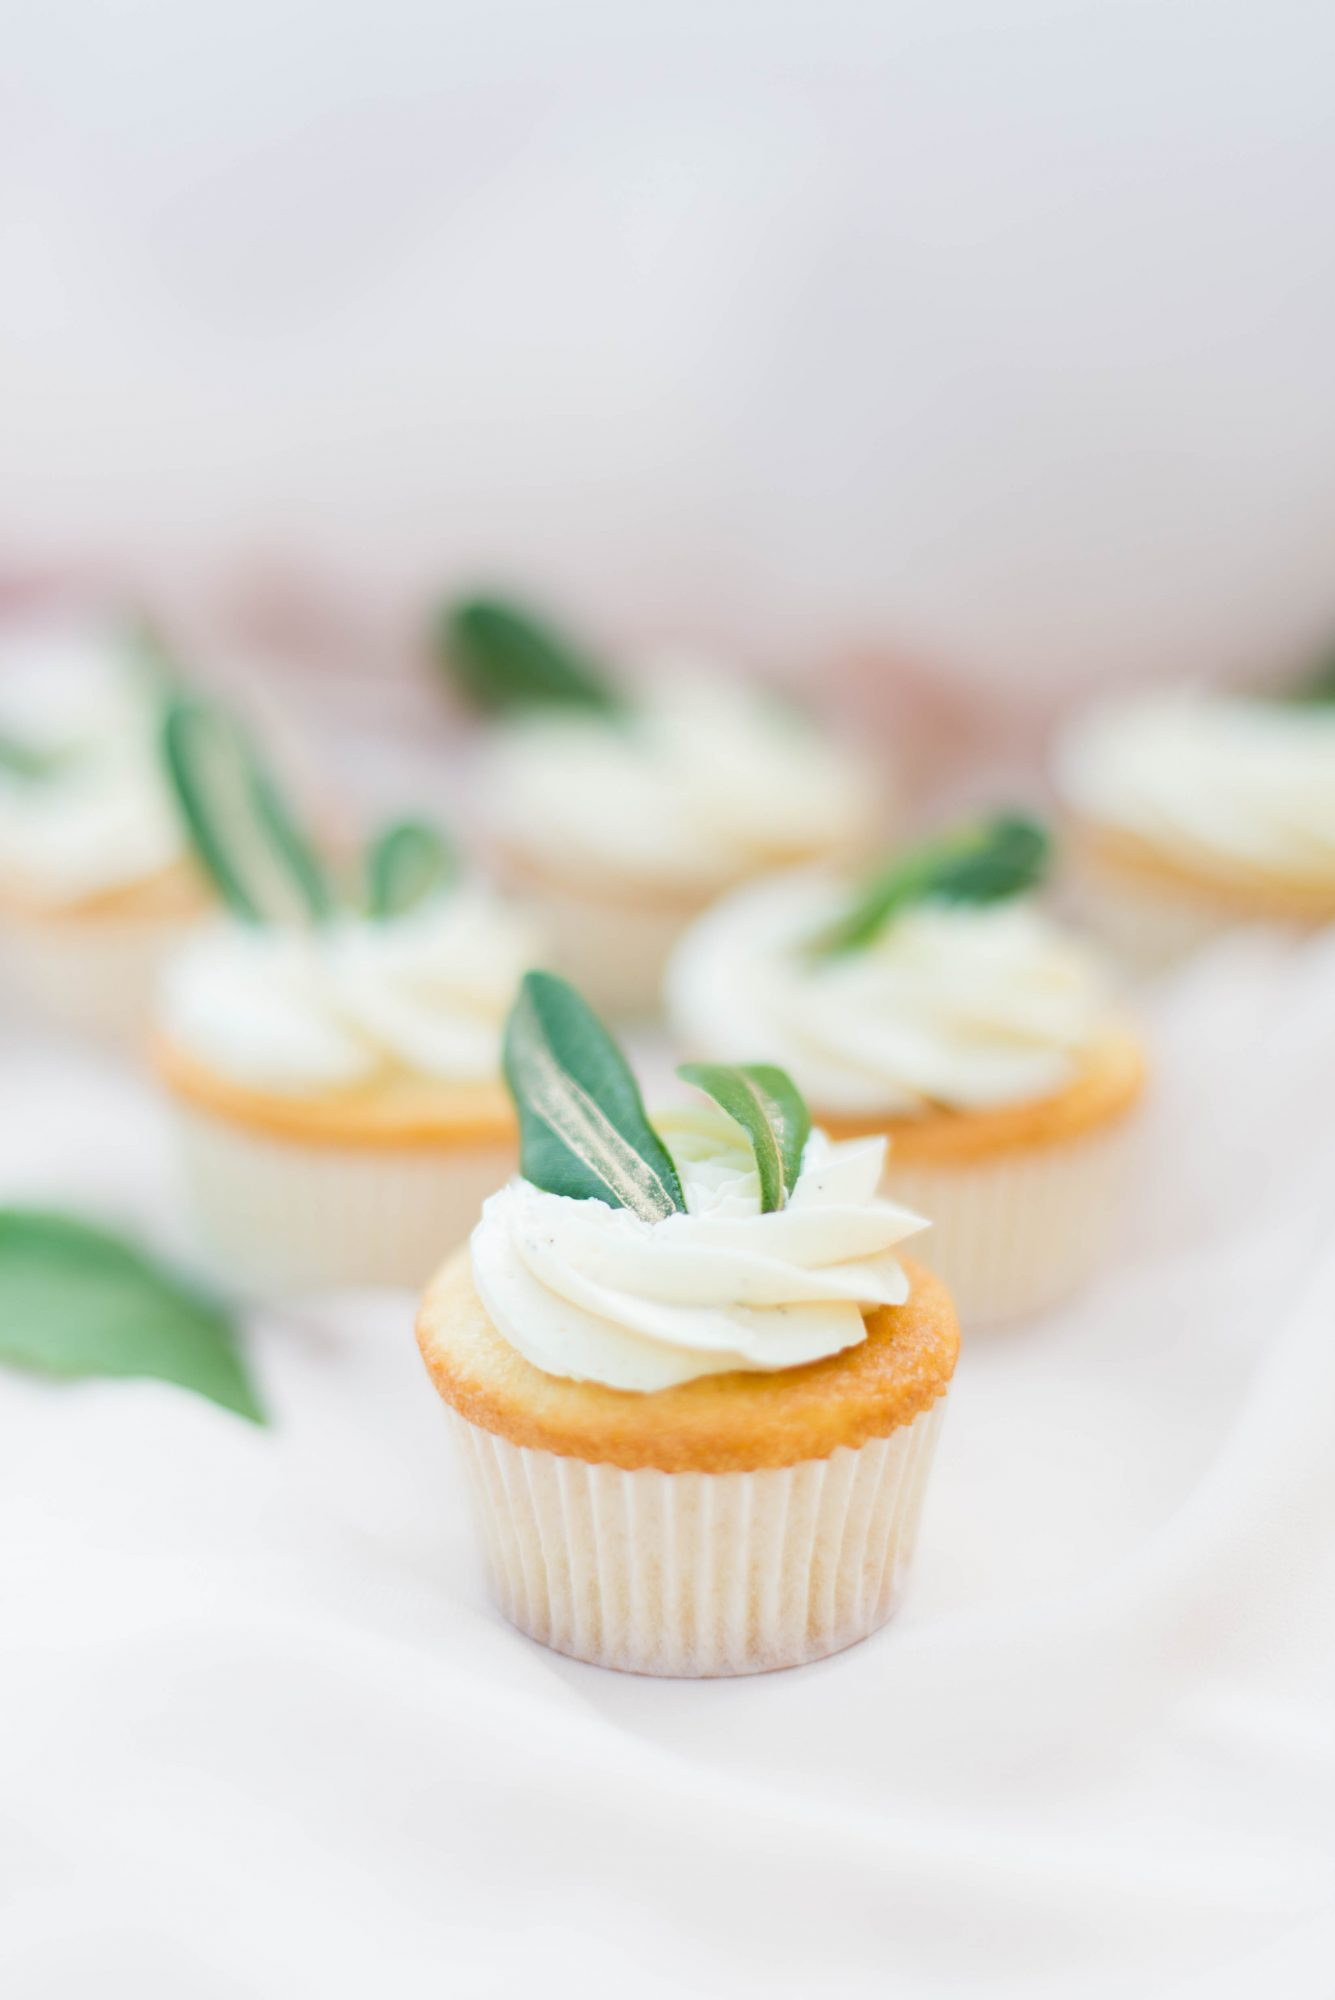 vanilla cupcakes with white frosting and green leaves